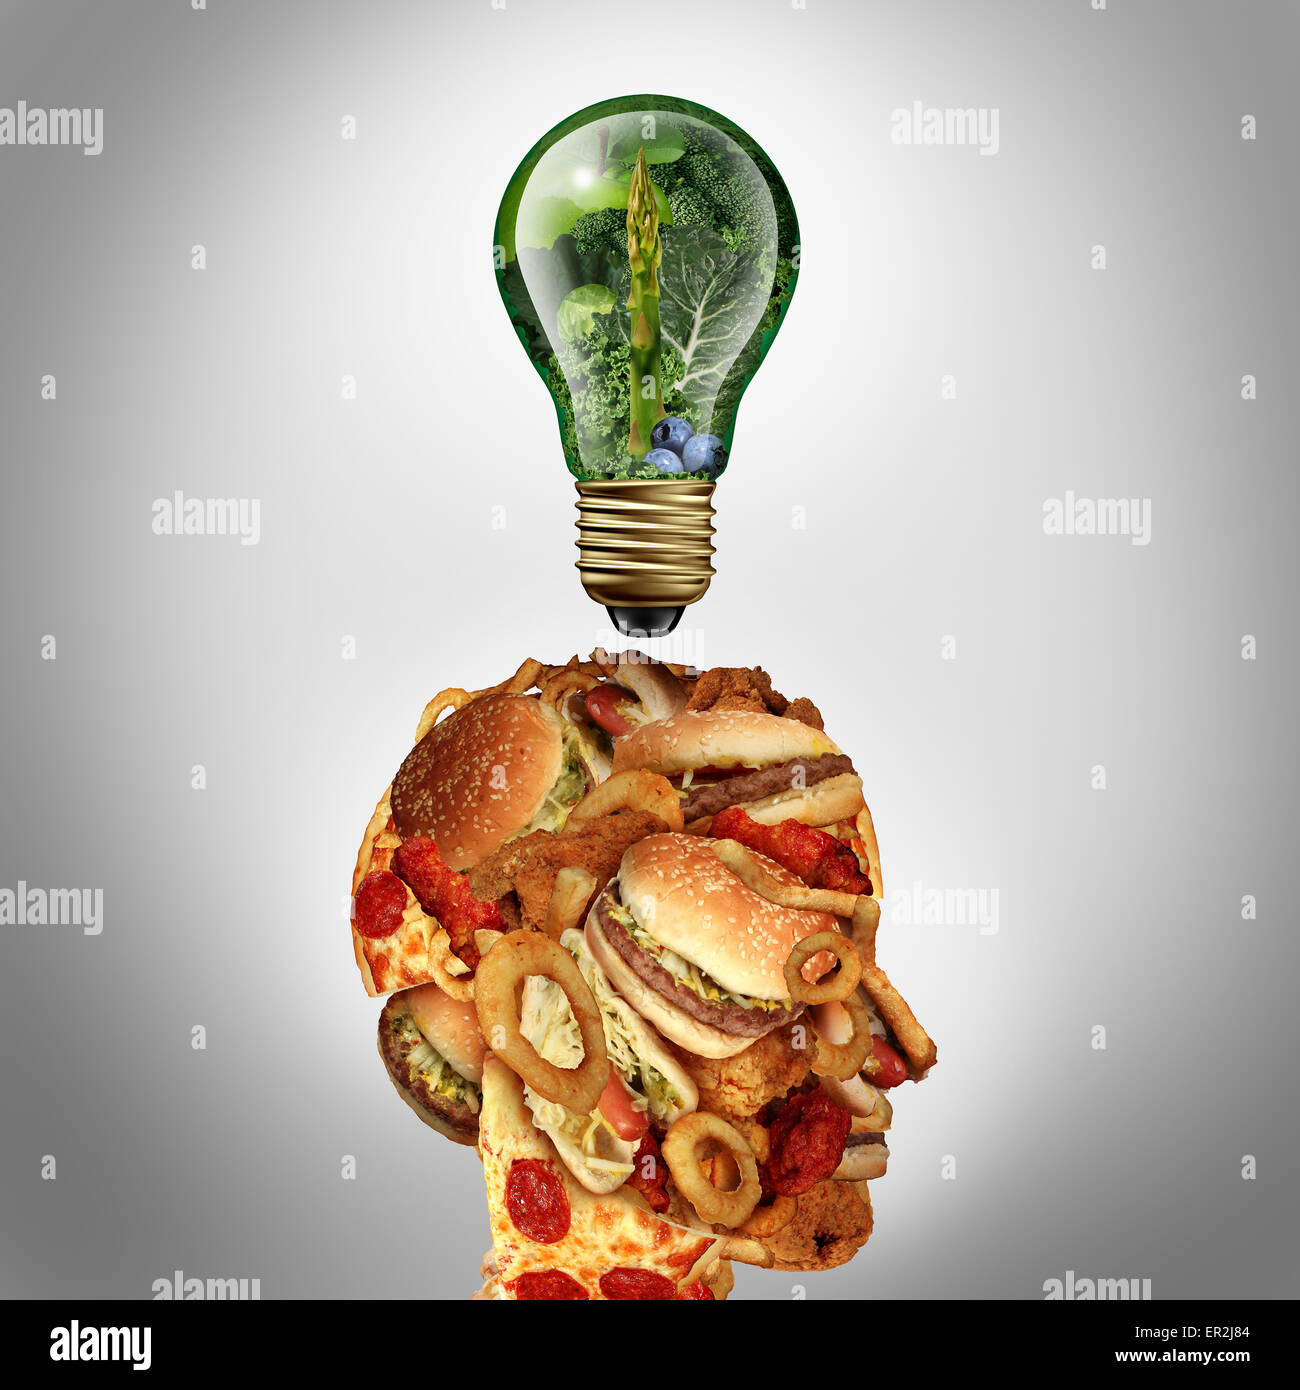 Diet Motivation and dieting inspiration concept as a human head made of greasy junk food with a lightbulb idea icon - Stock Image